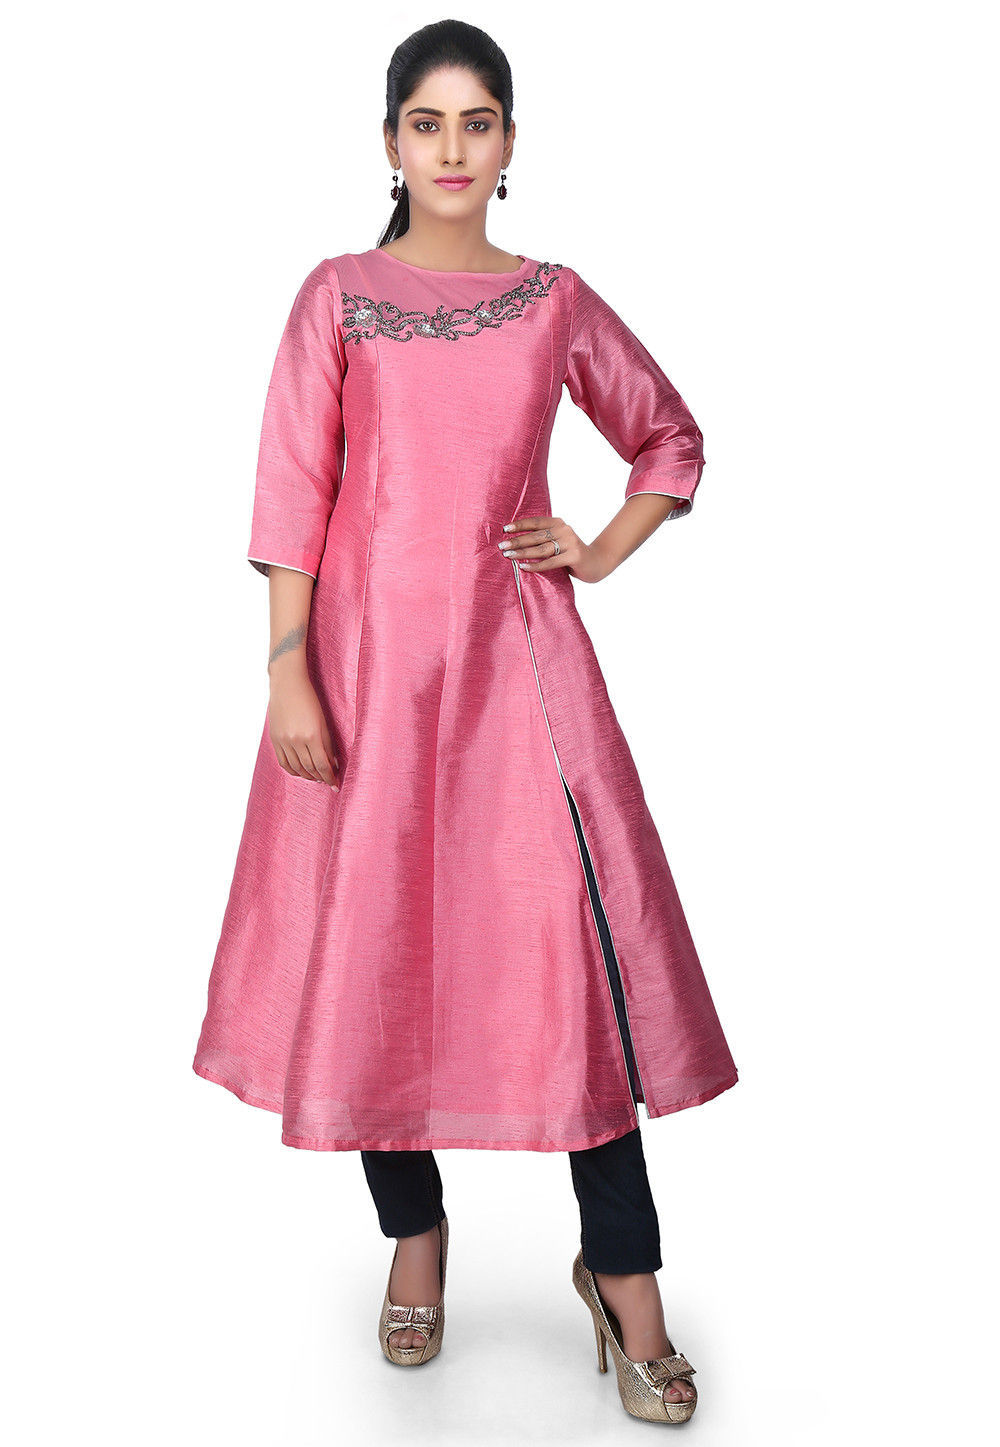 Hand Embroidered Dupion Silk Side Slit Kurta in Pink